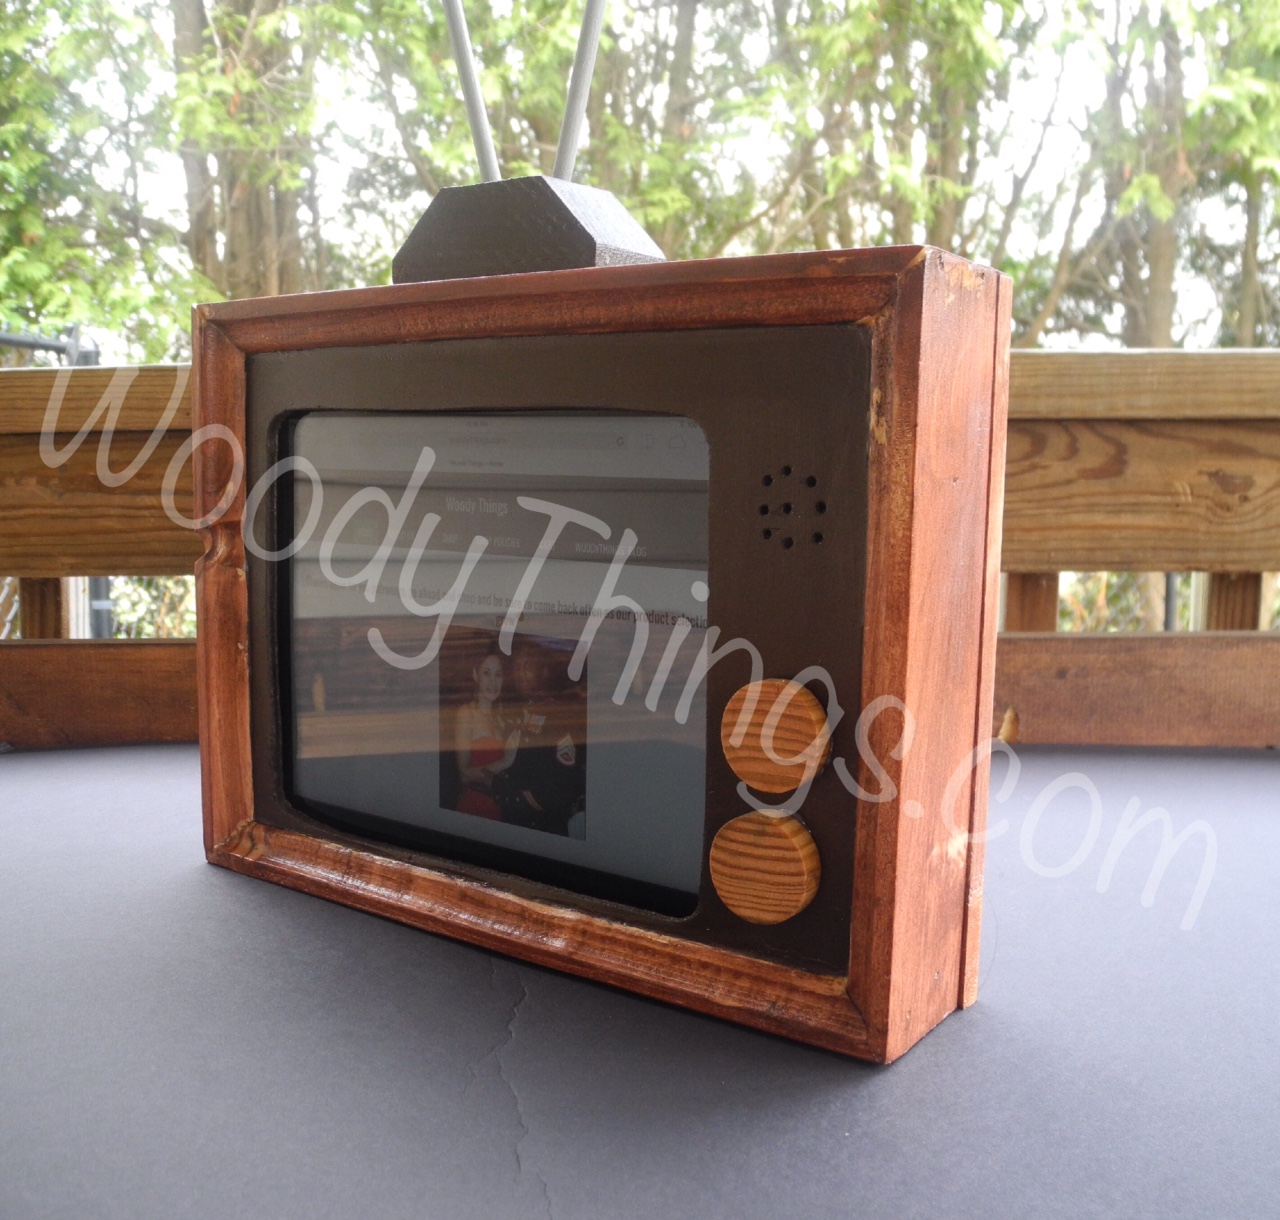 80 s inspired tv ipad tablet stand woody things. Black Bedroom Furniture Sets. Home Design Ideas